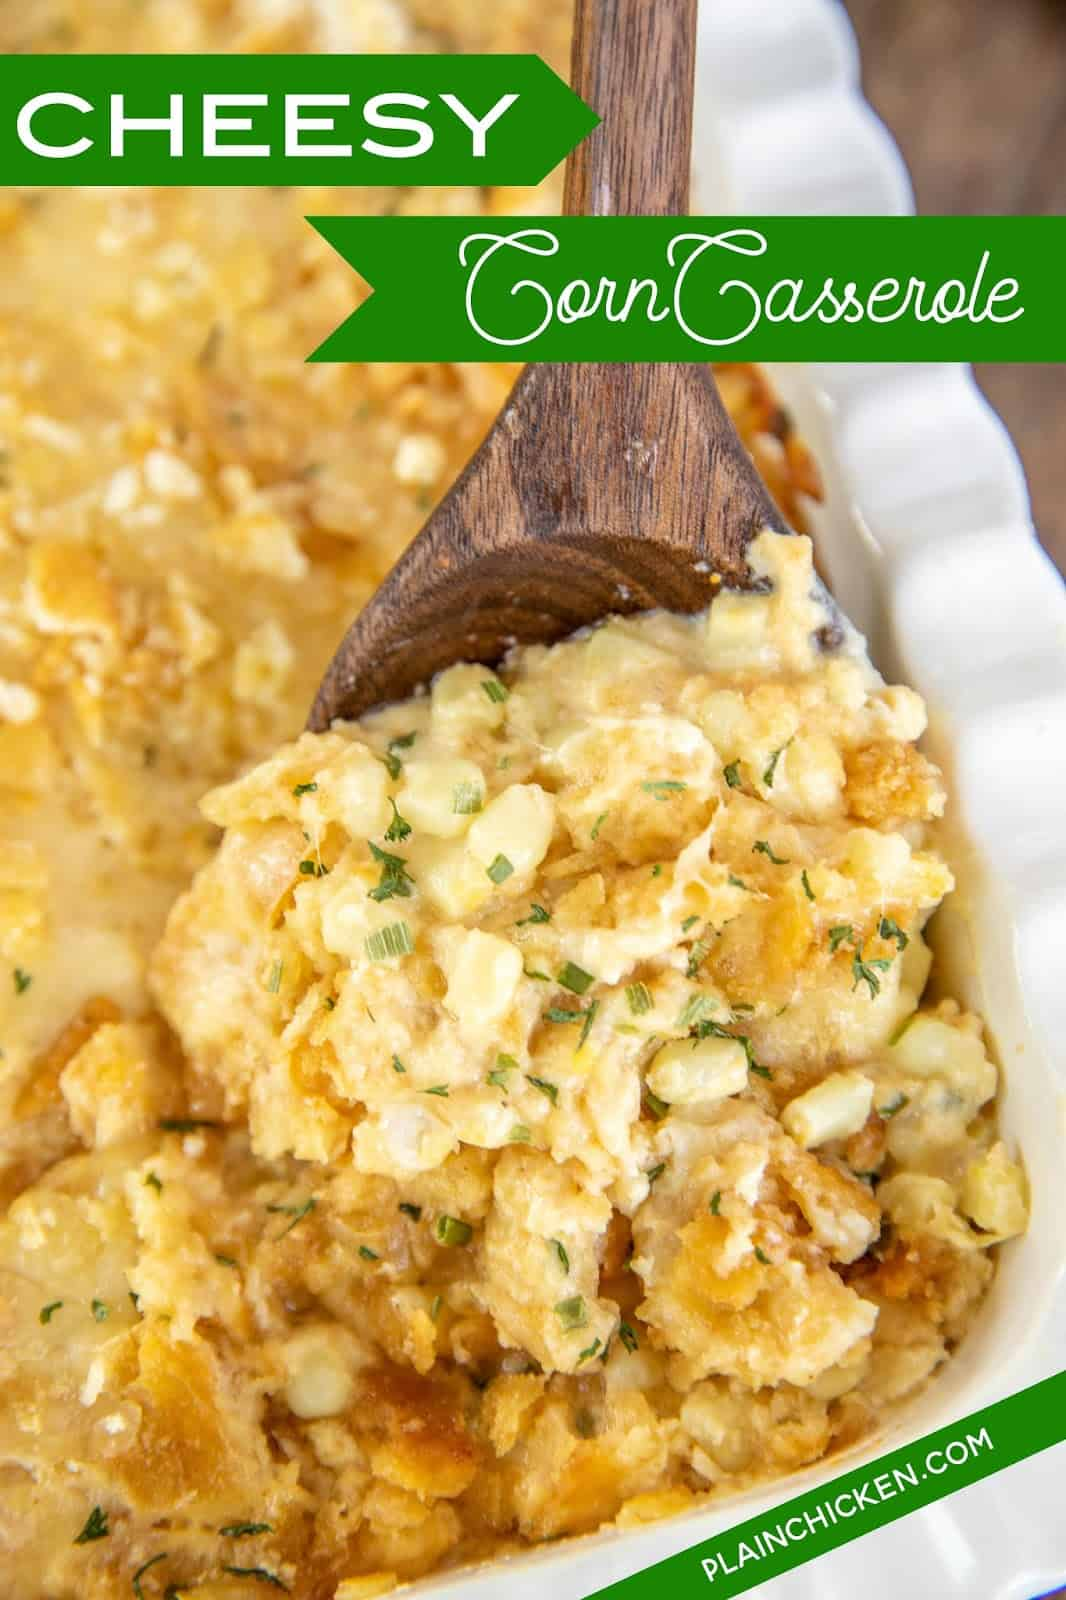 spooning corn casserole from baking dish